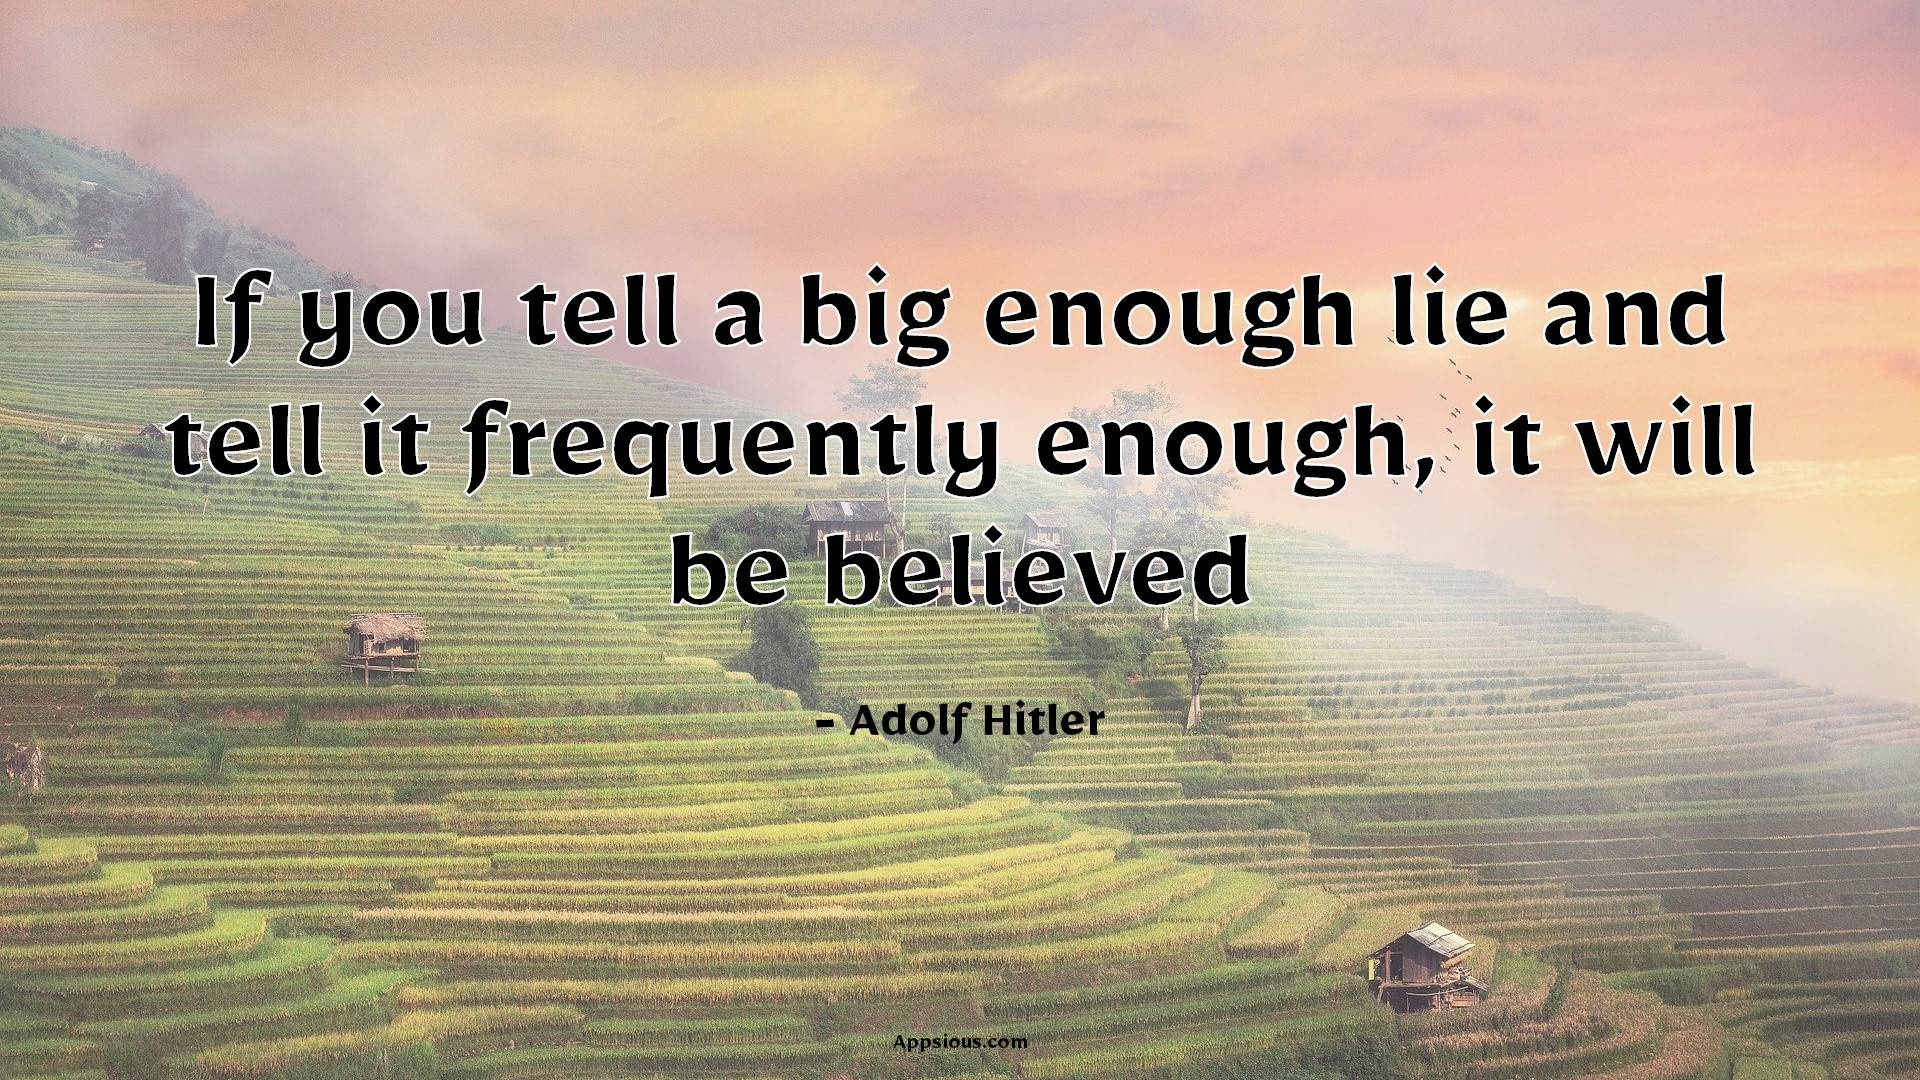 If you tell a big enough lie and tell it frequently enough, it will be believed